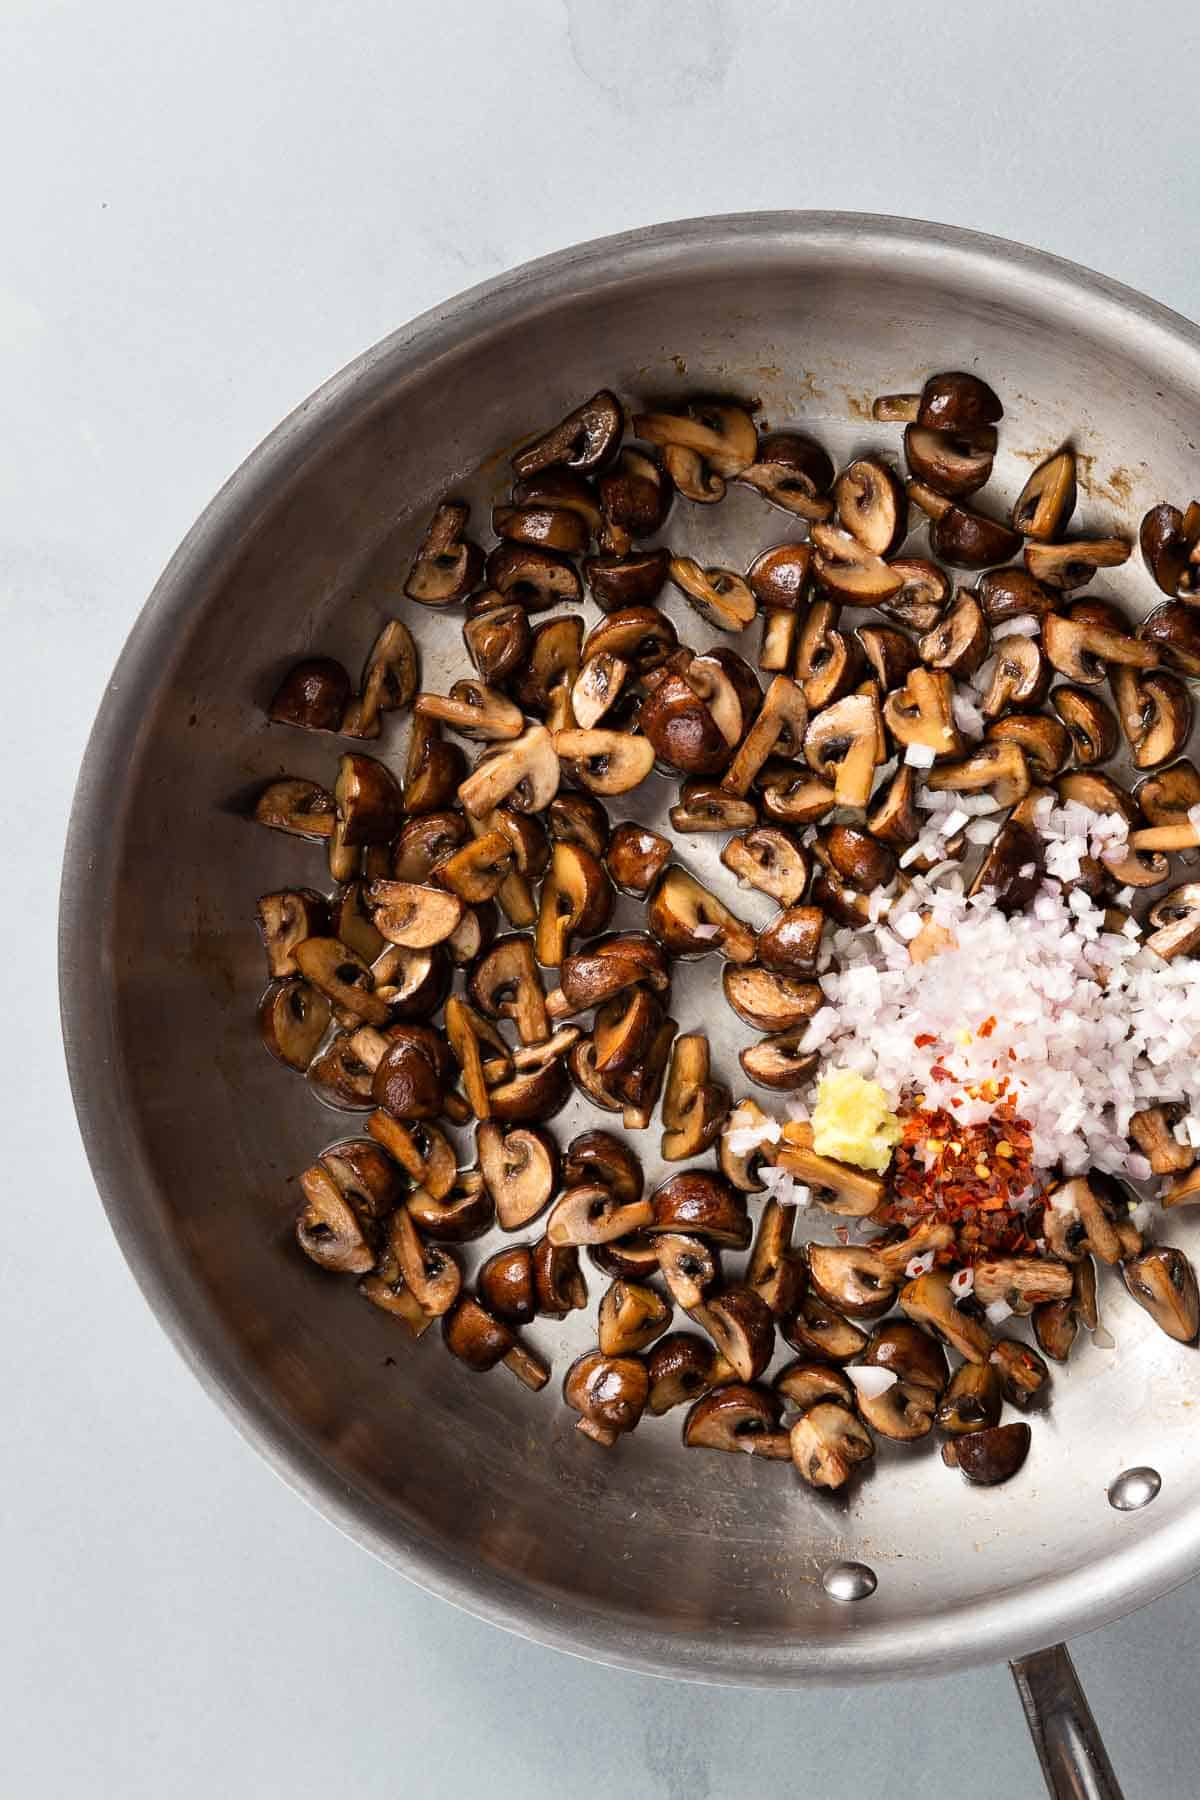 Cooking mushrooms with shallots and spices in a large metal pan